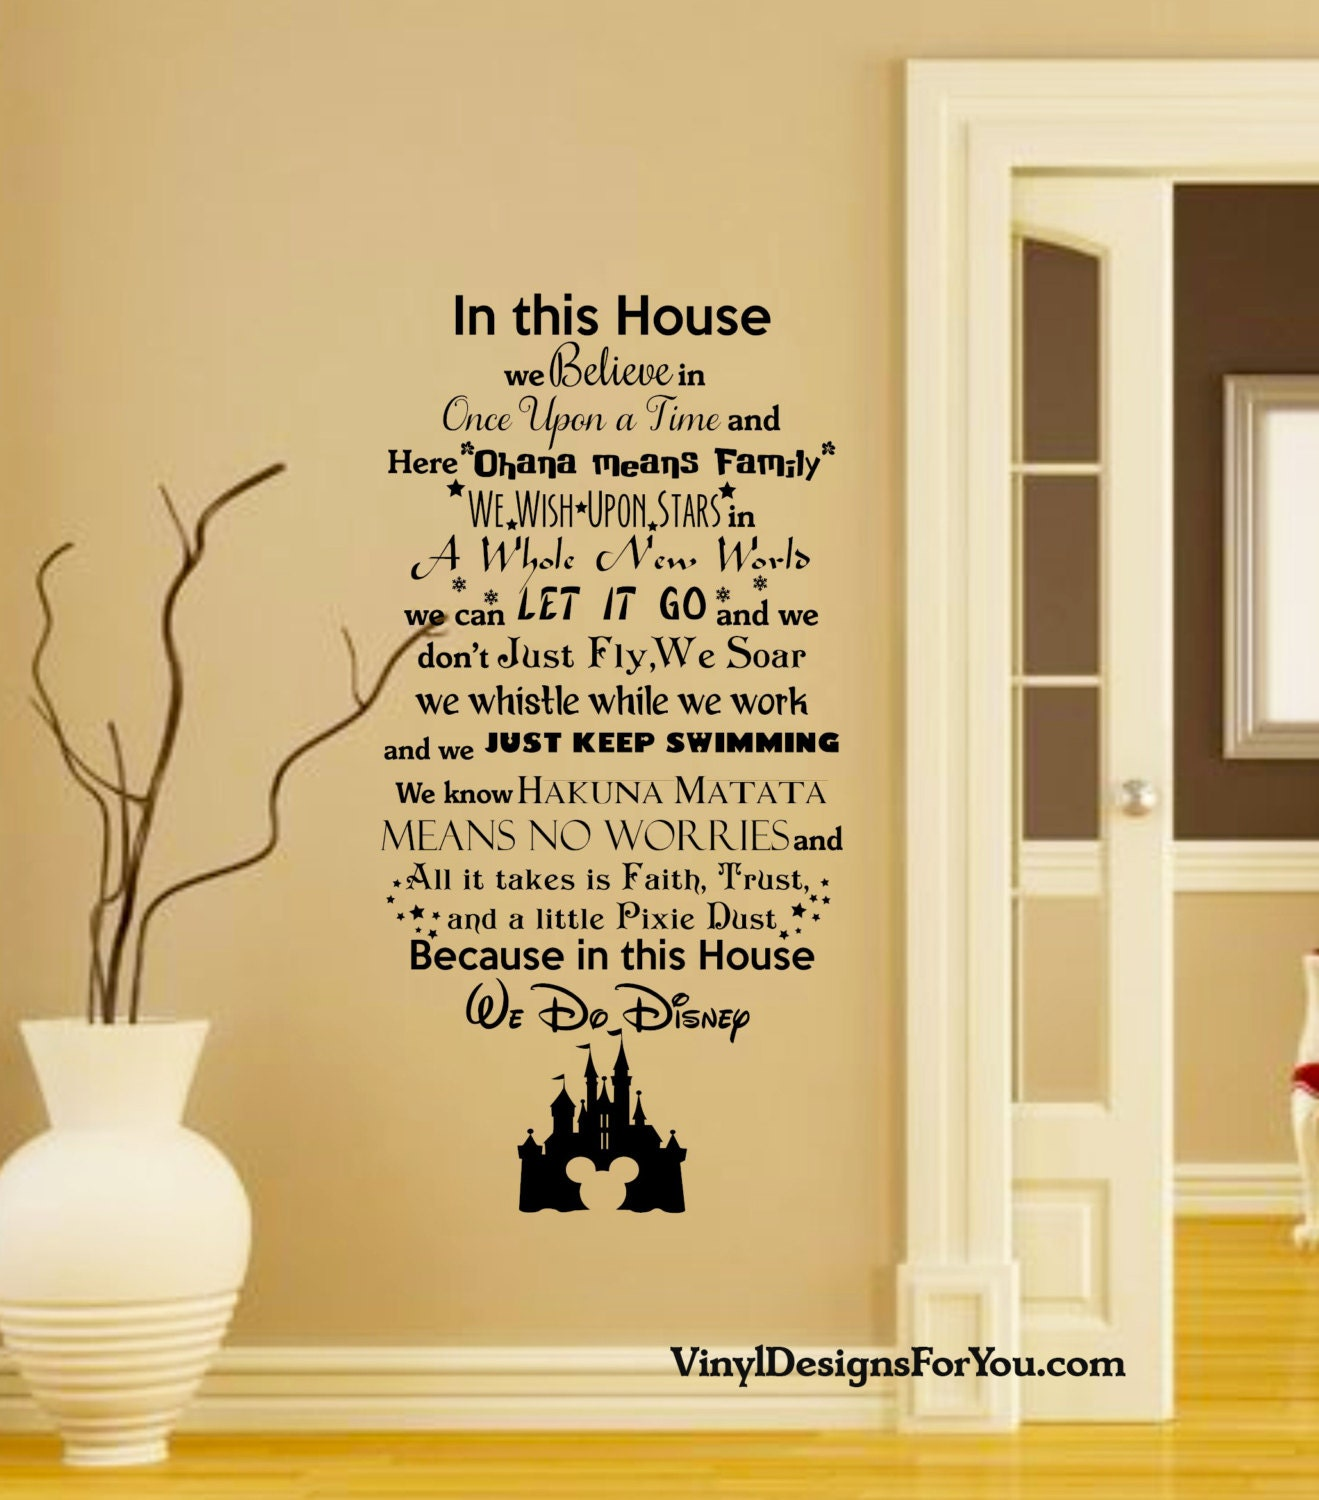 Disney Wall Art - talentneeds.com -